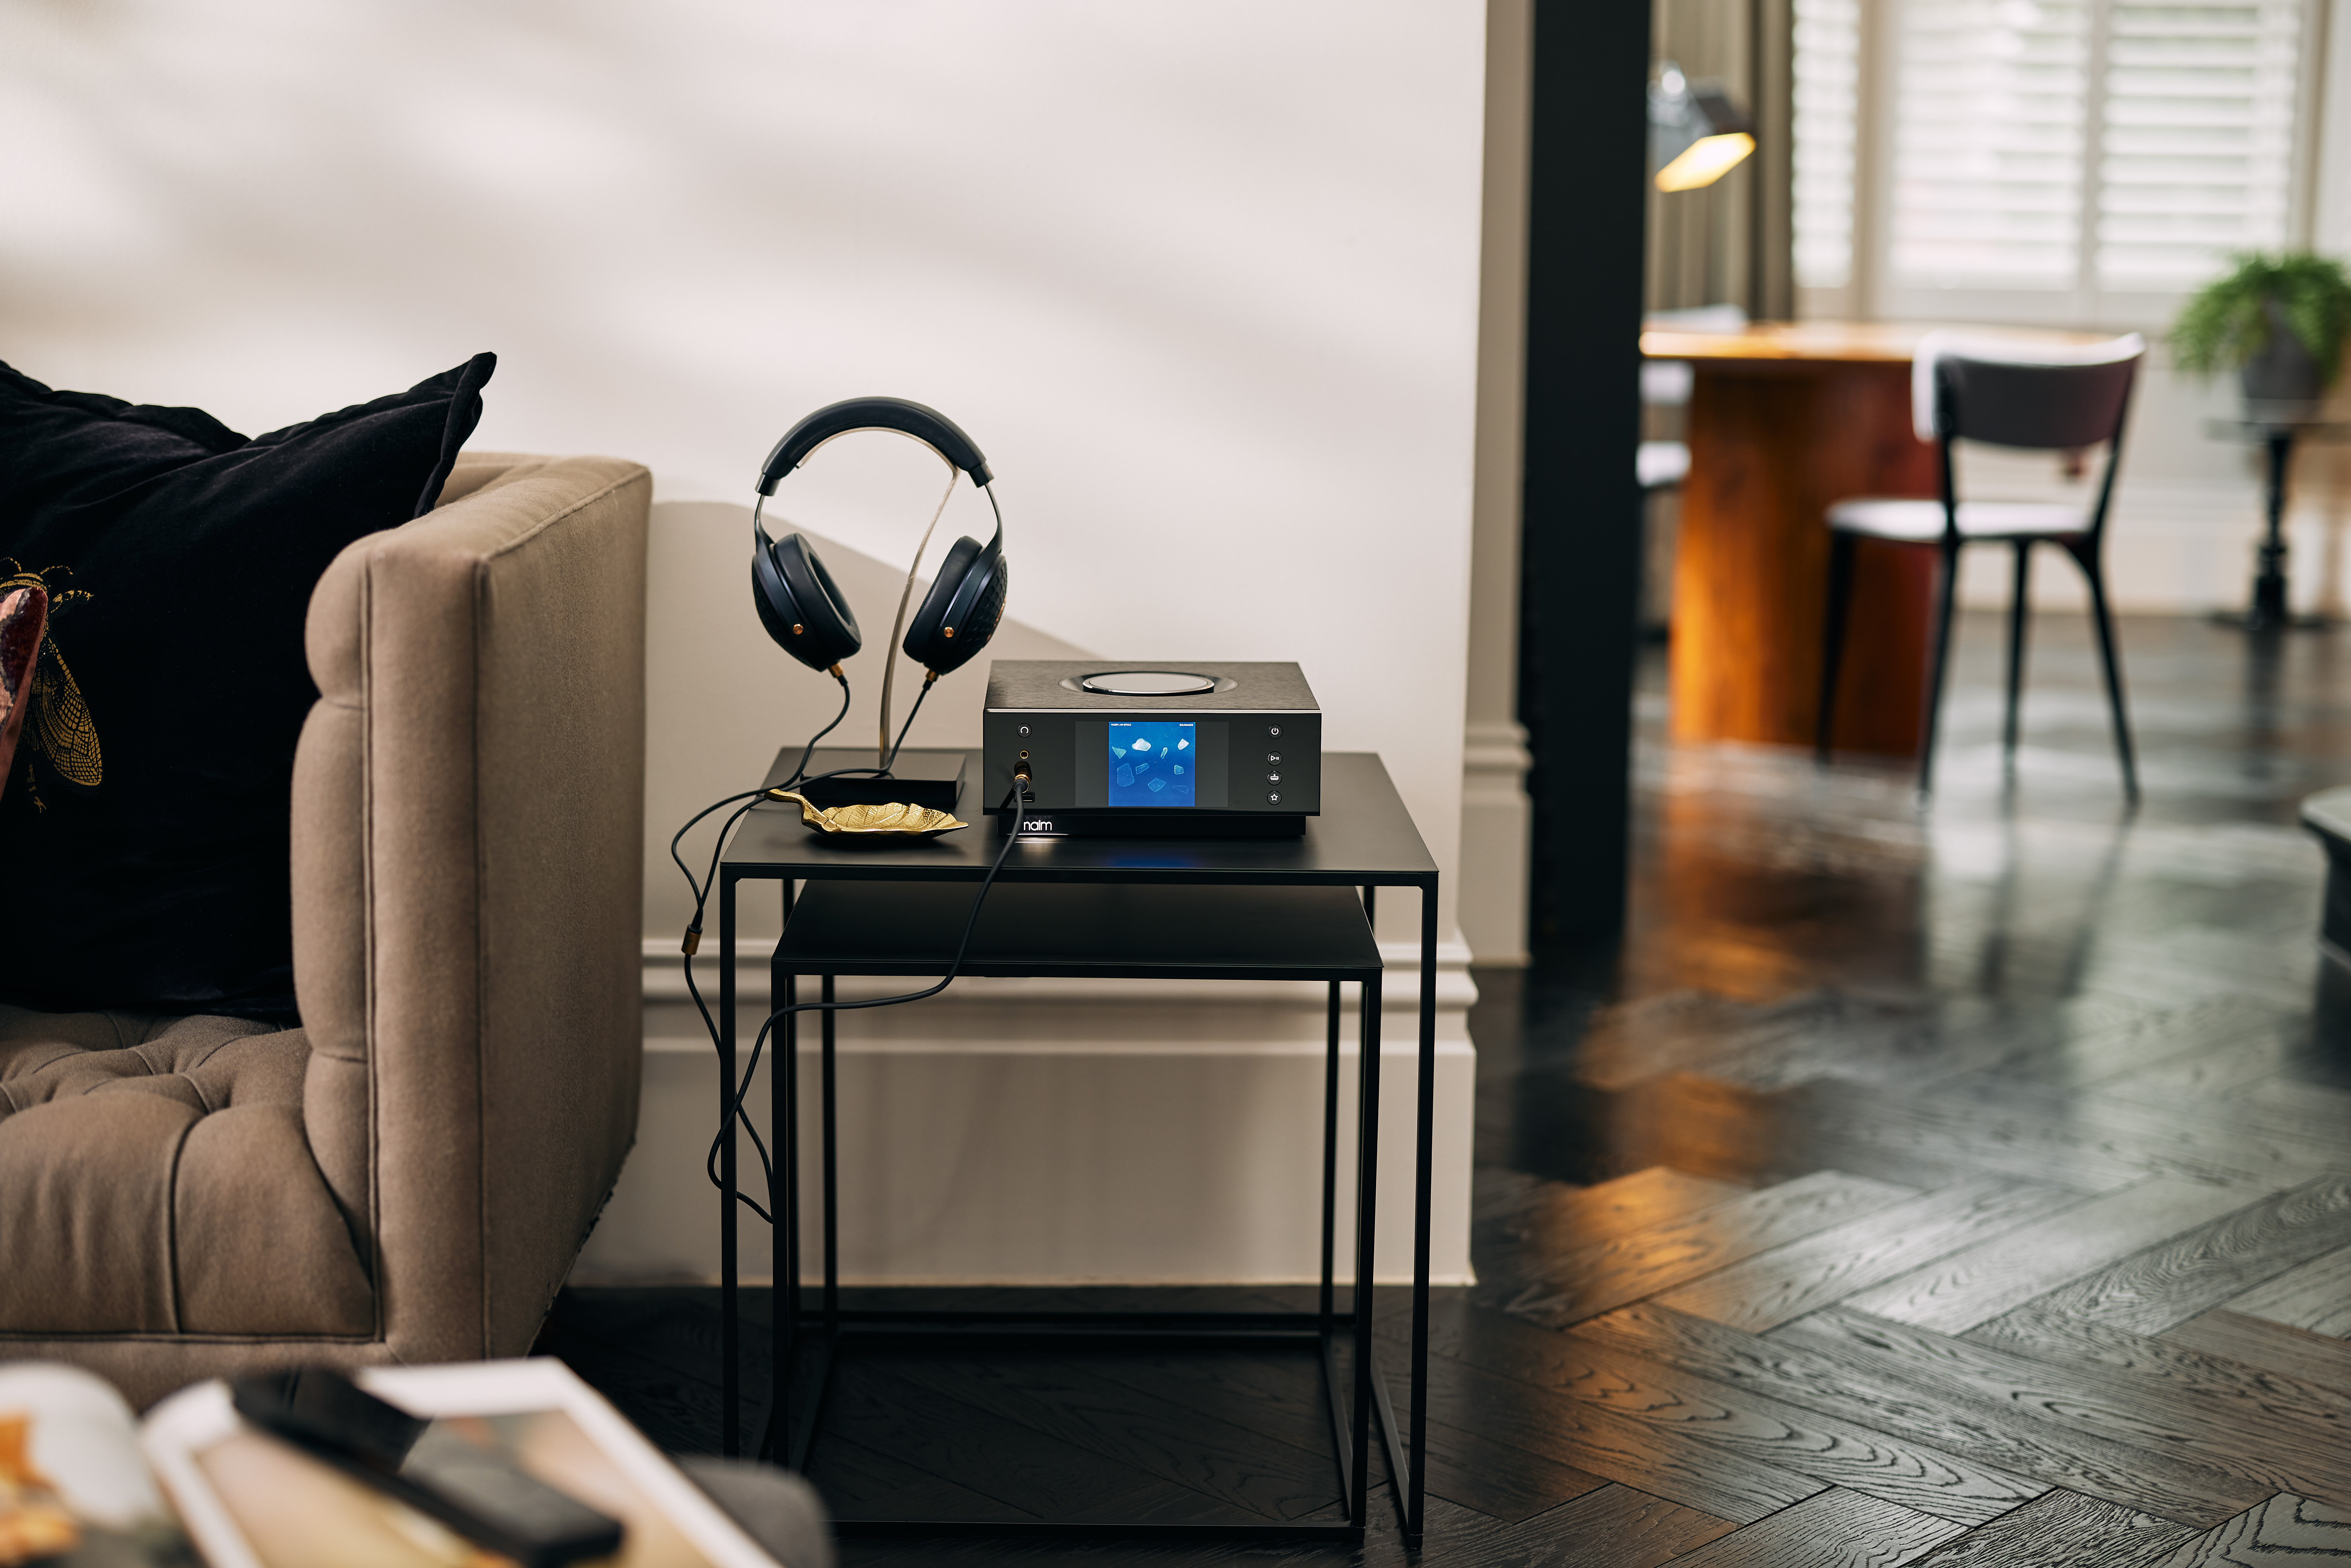 Naim says that the Uniti Atom Headphone Edition is powerful enough to drive even the most demanding luxury headphones